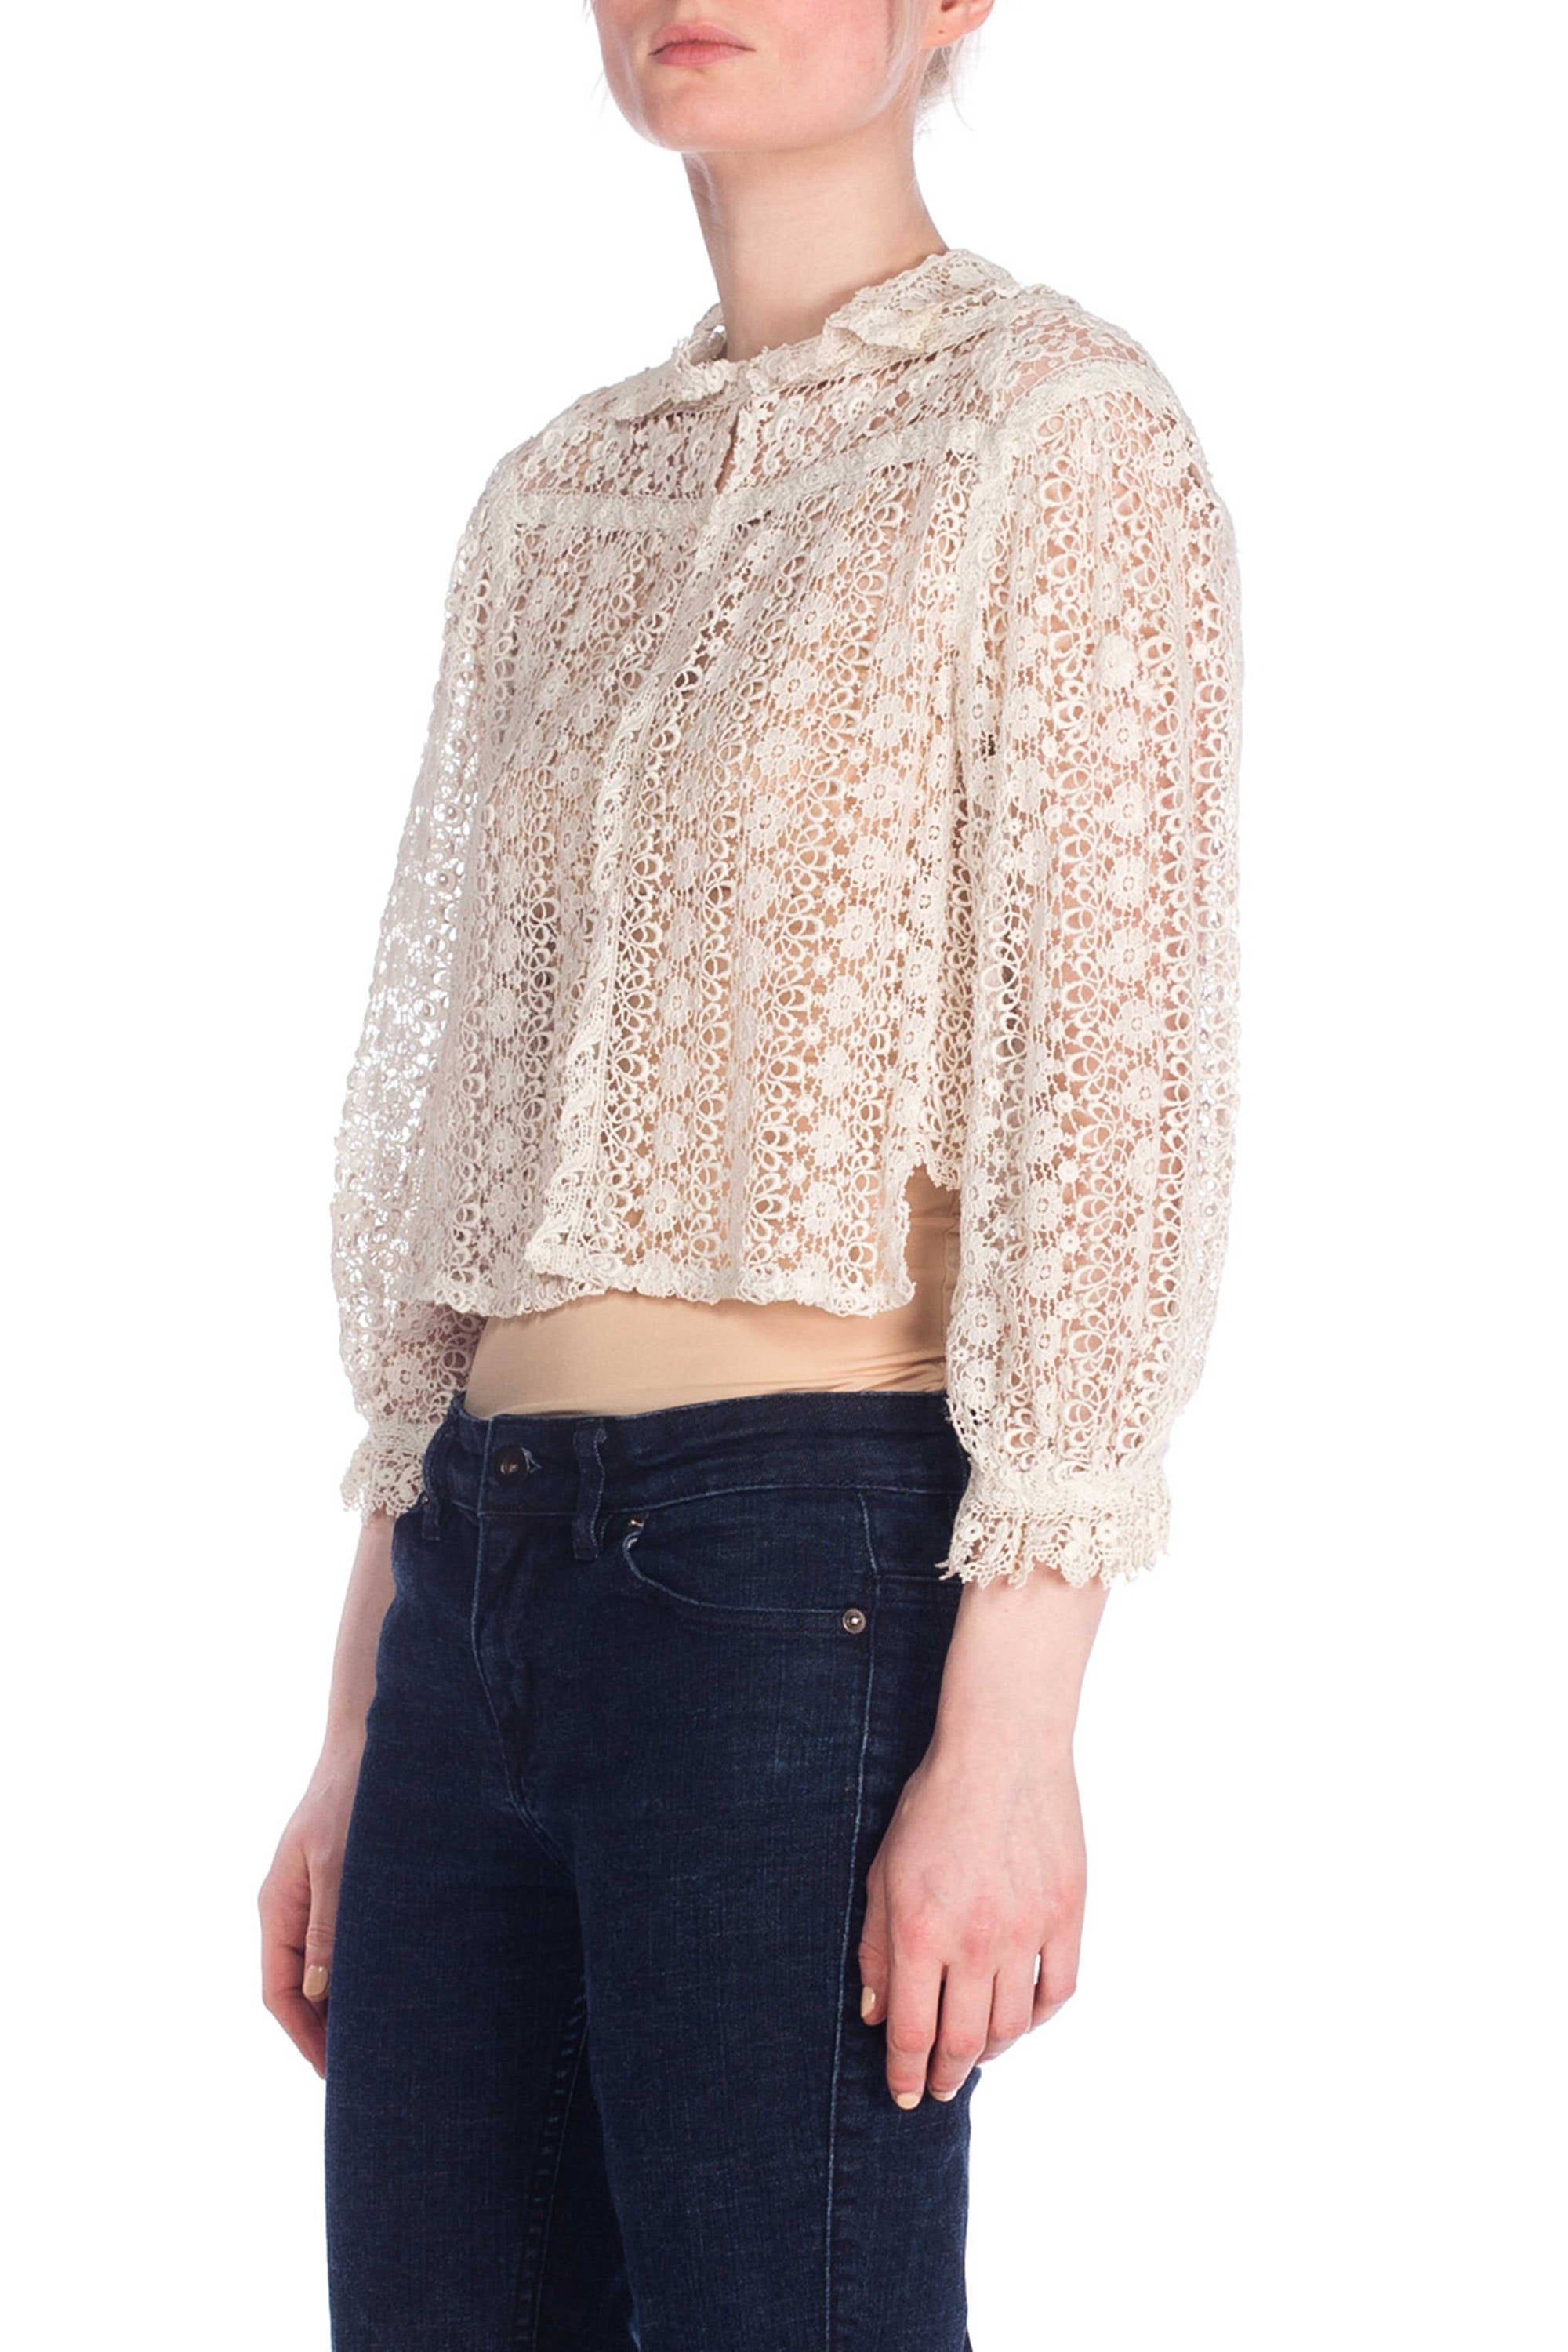 Edwardian Off White Cotton Thick Crochet Style Lace Jacket Top With 3/4 Length Sleeves